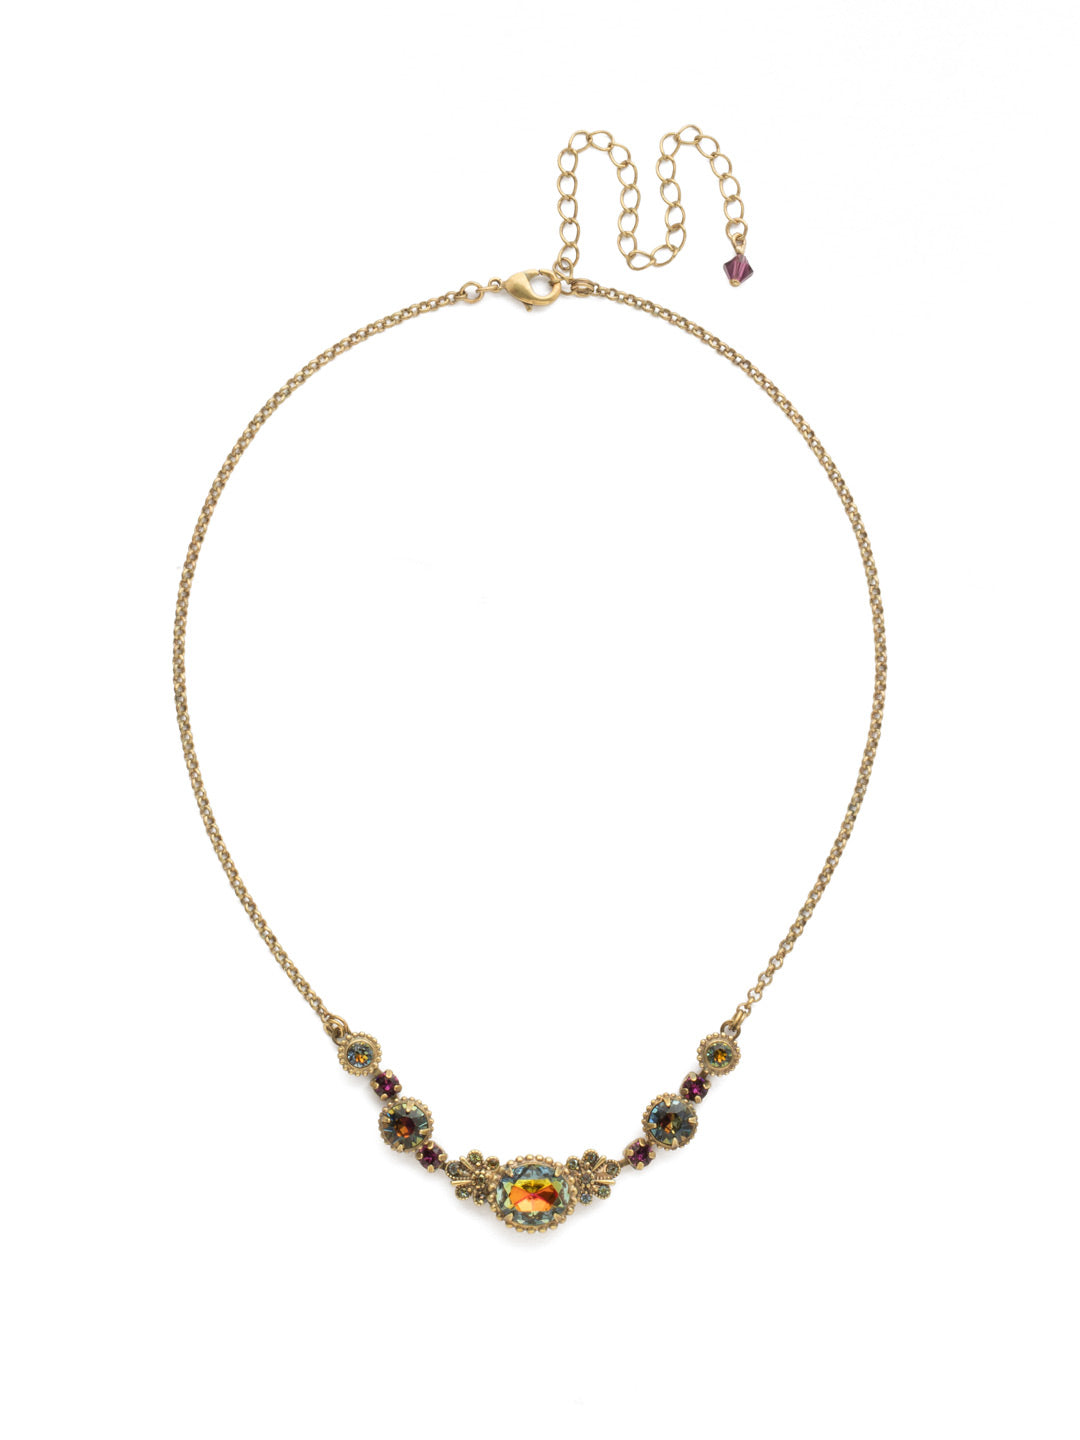 Clustered Circular Crystal Drop Tennis Necklace - NCJ30AGVO